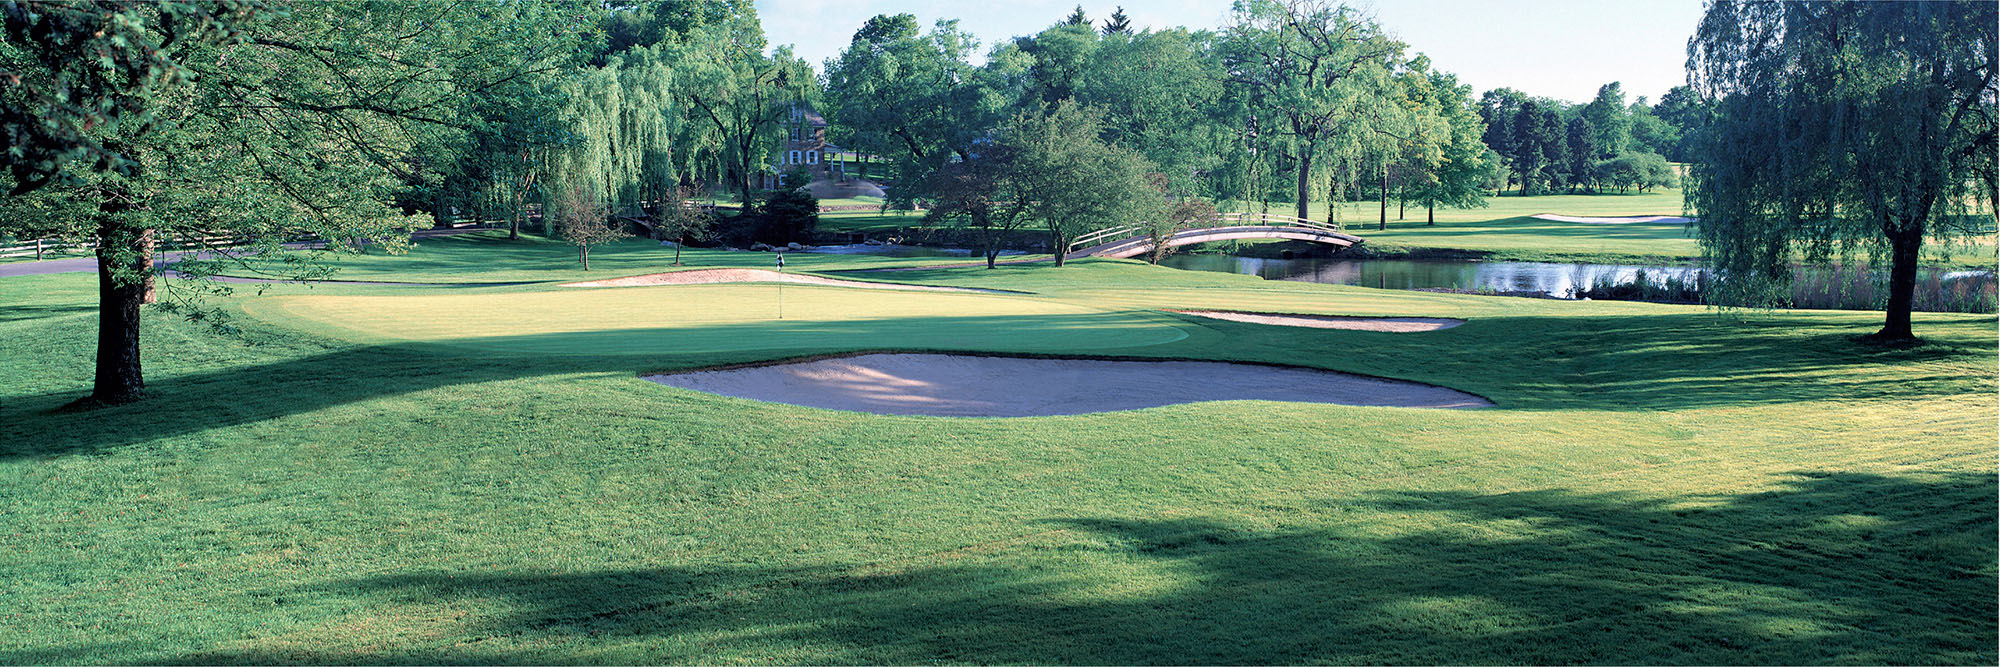 Golf Course Image - Saucon Valley Weyhill No. 6